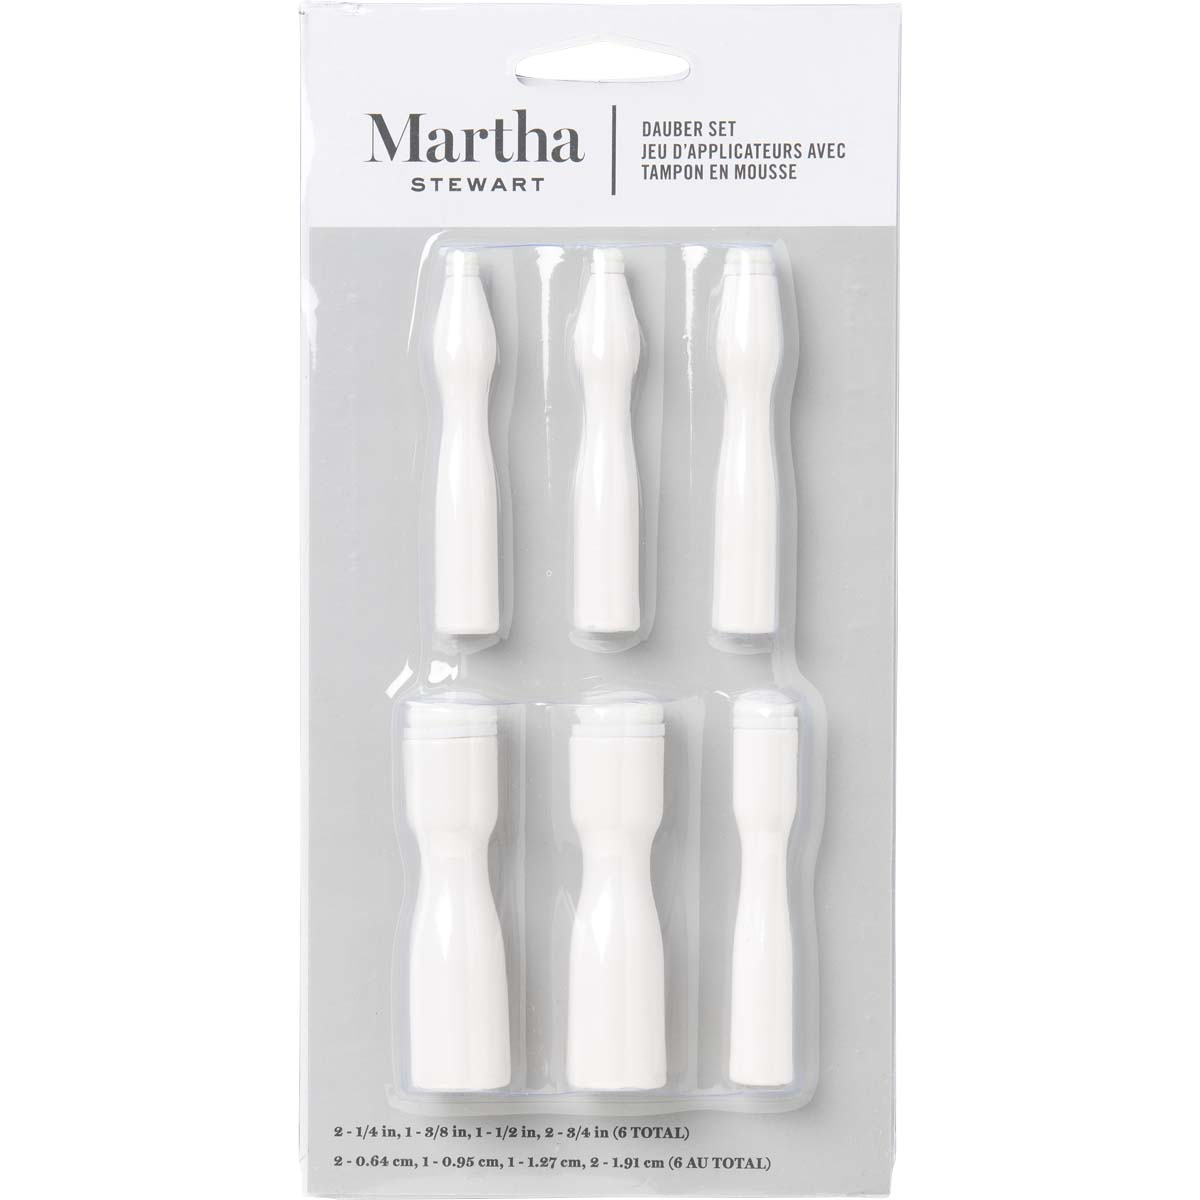 Martha Stewart ® Brush Sets - Dauber Set 6 pc. - 32946